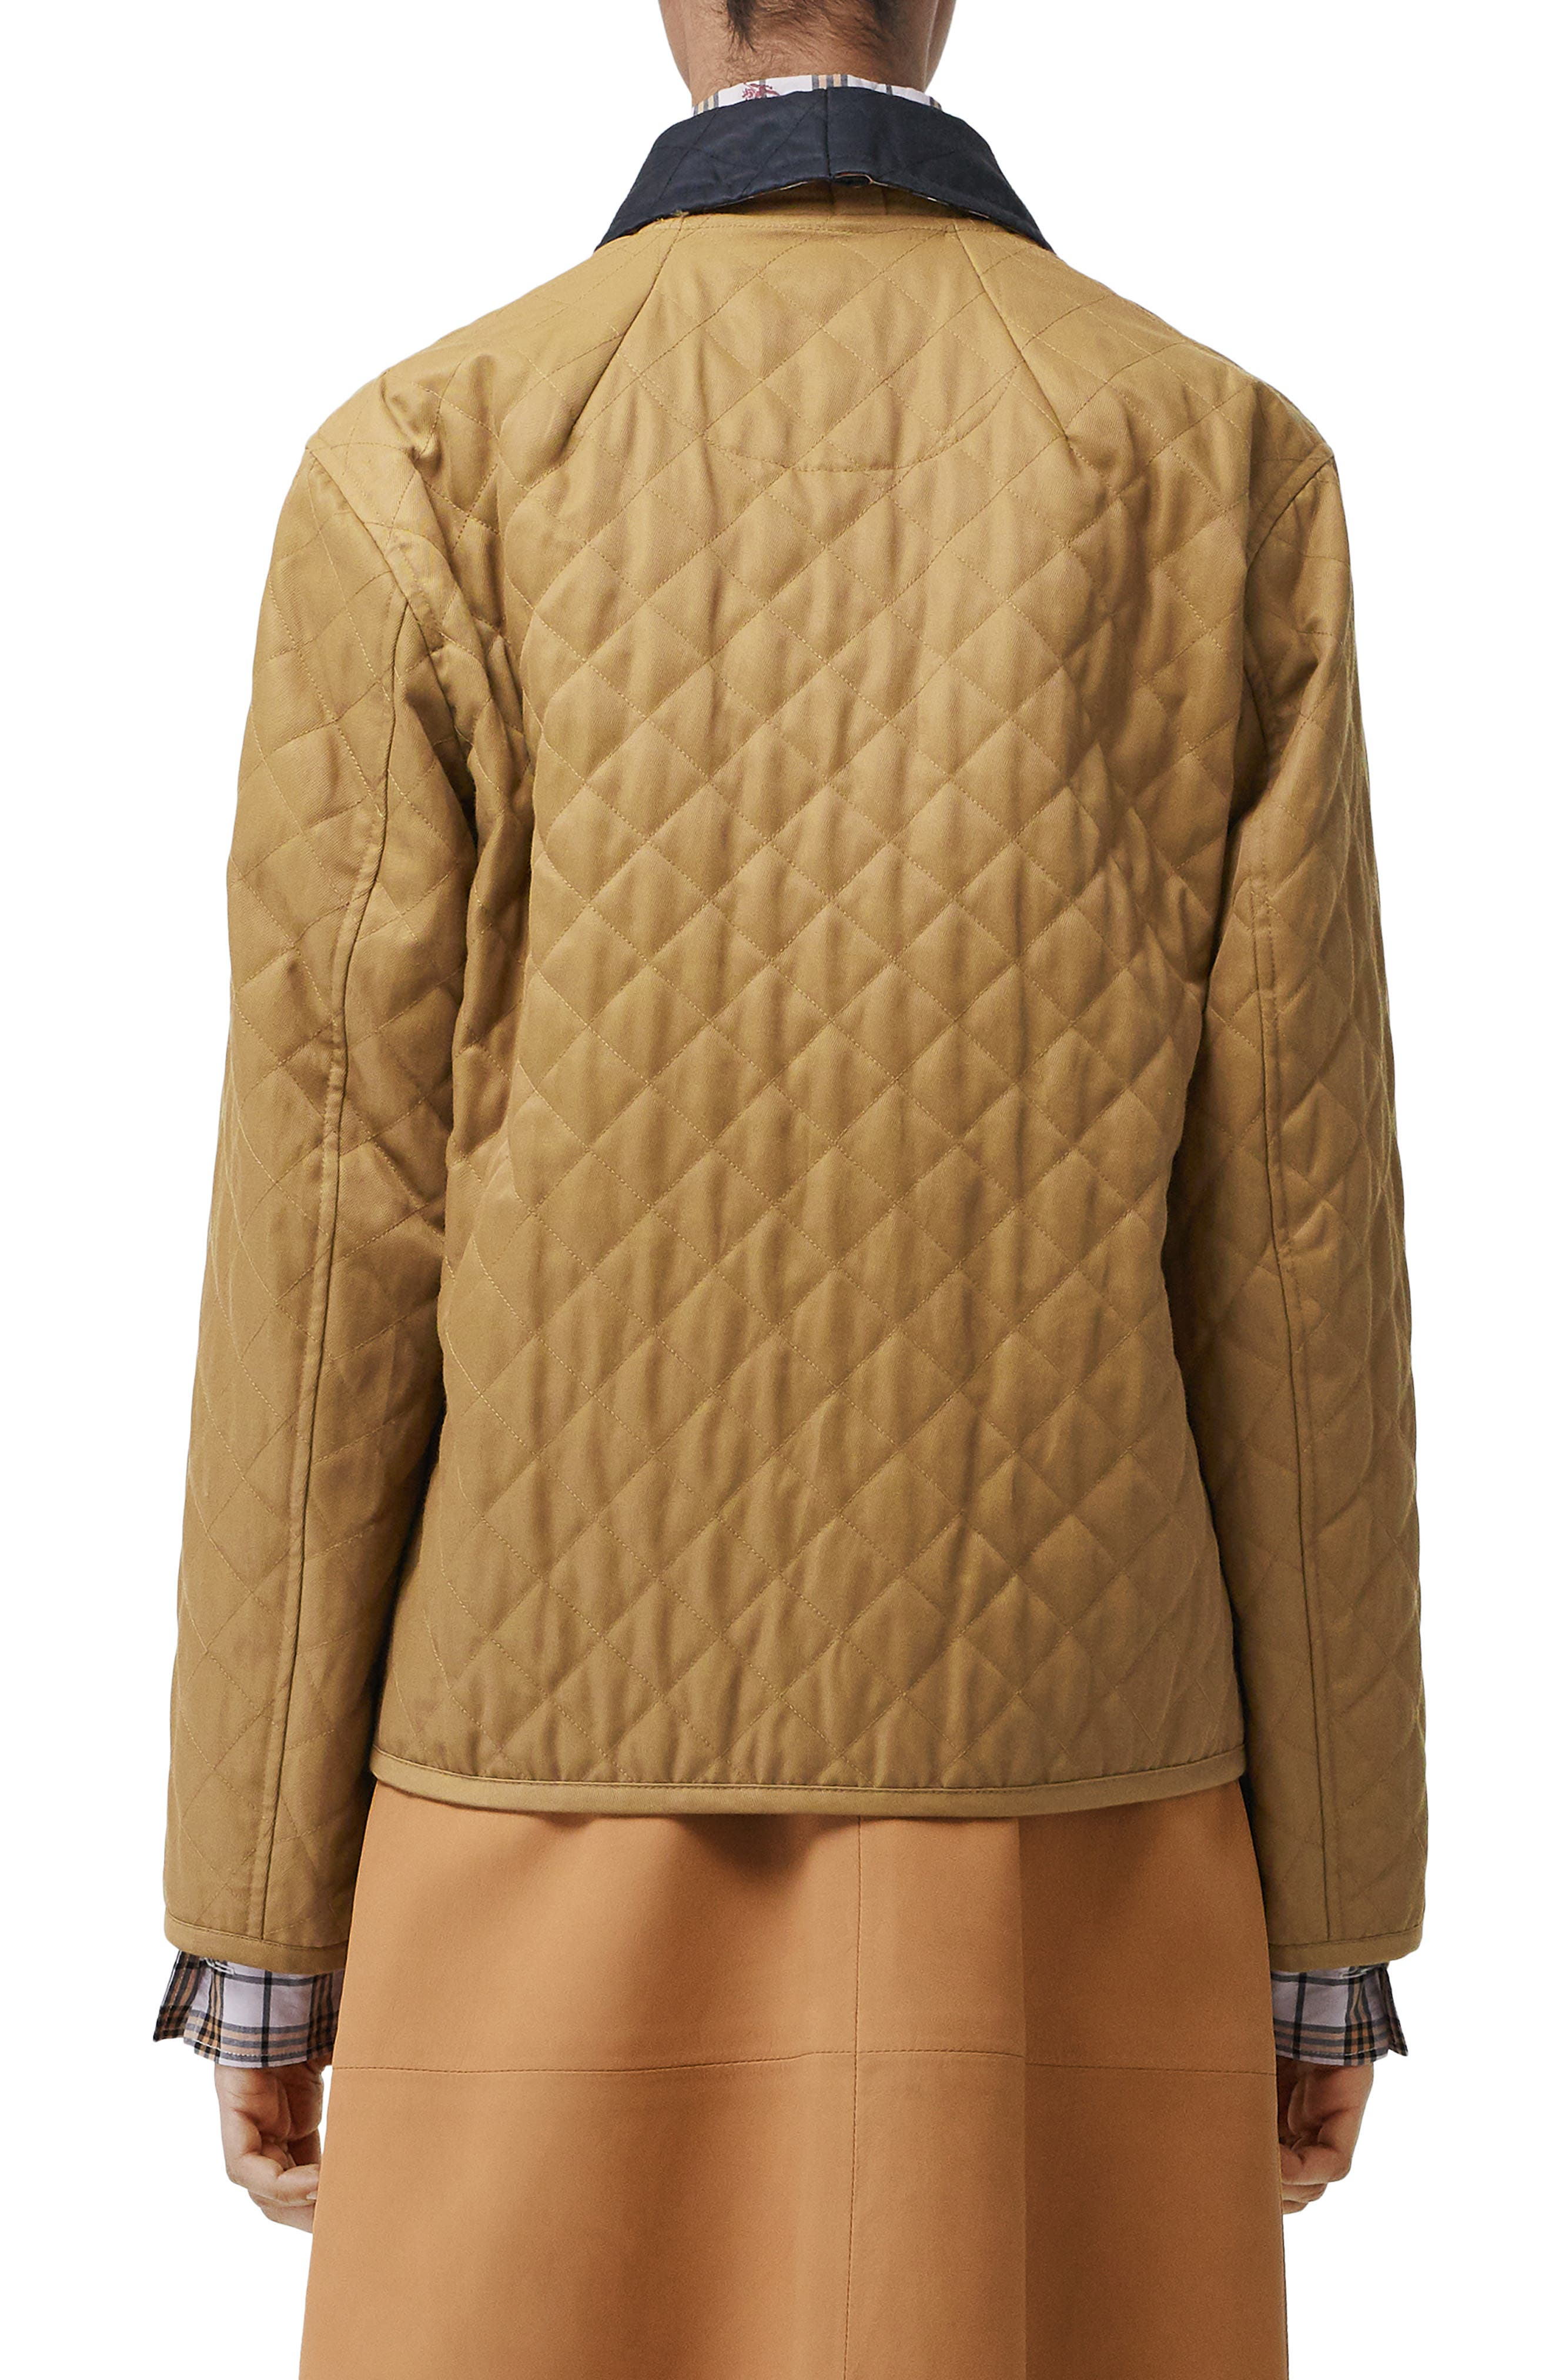 Dranefeld Quilted Jacket,                             Alternate thumbnail 2, color,                             CAMEL